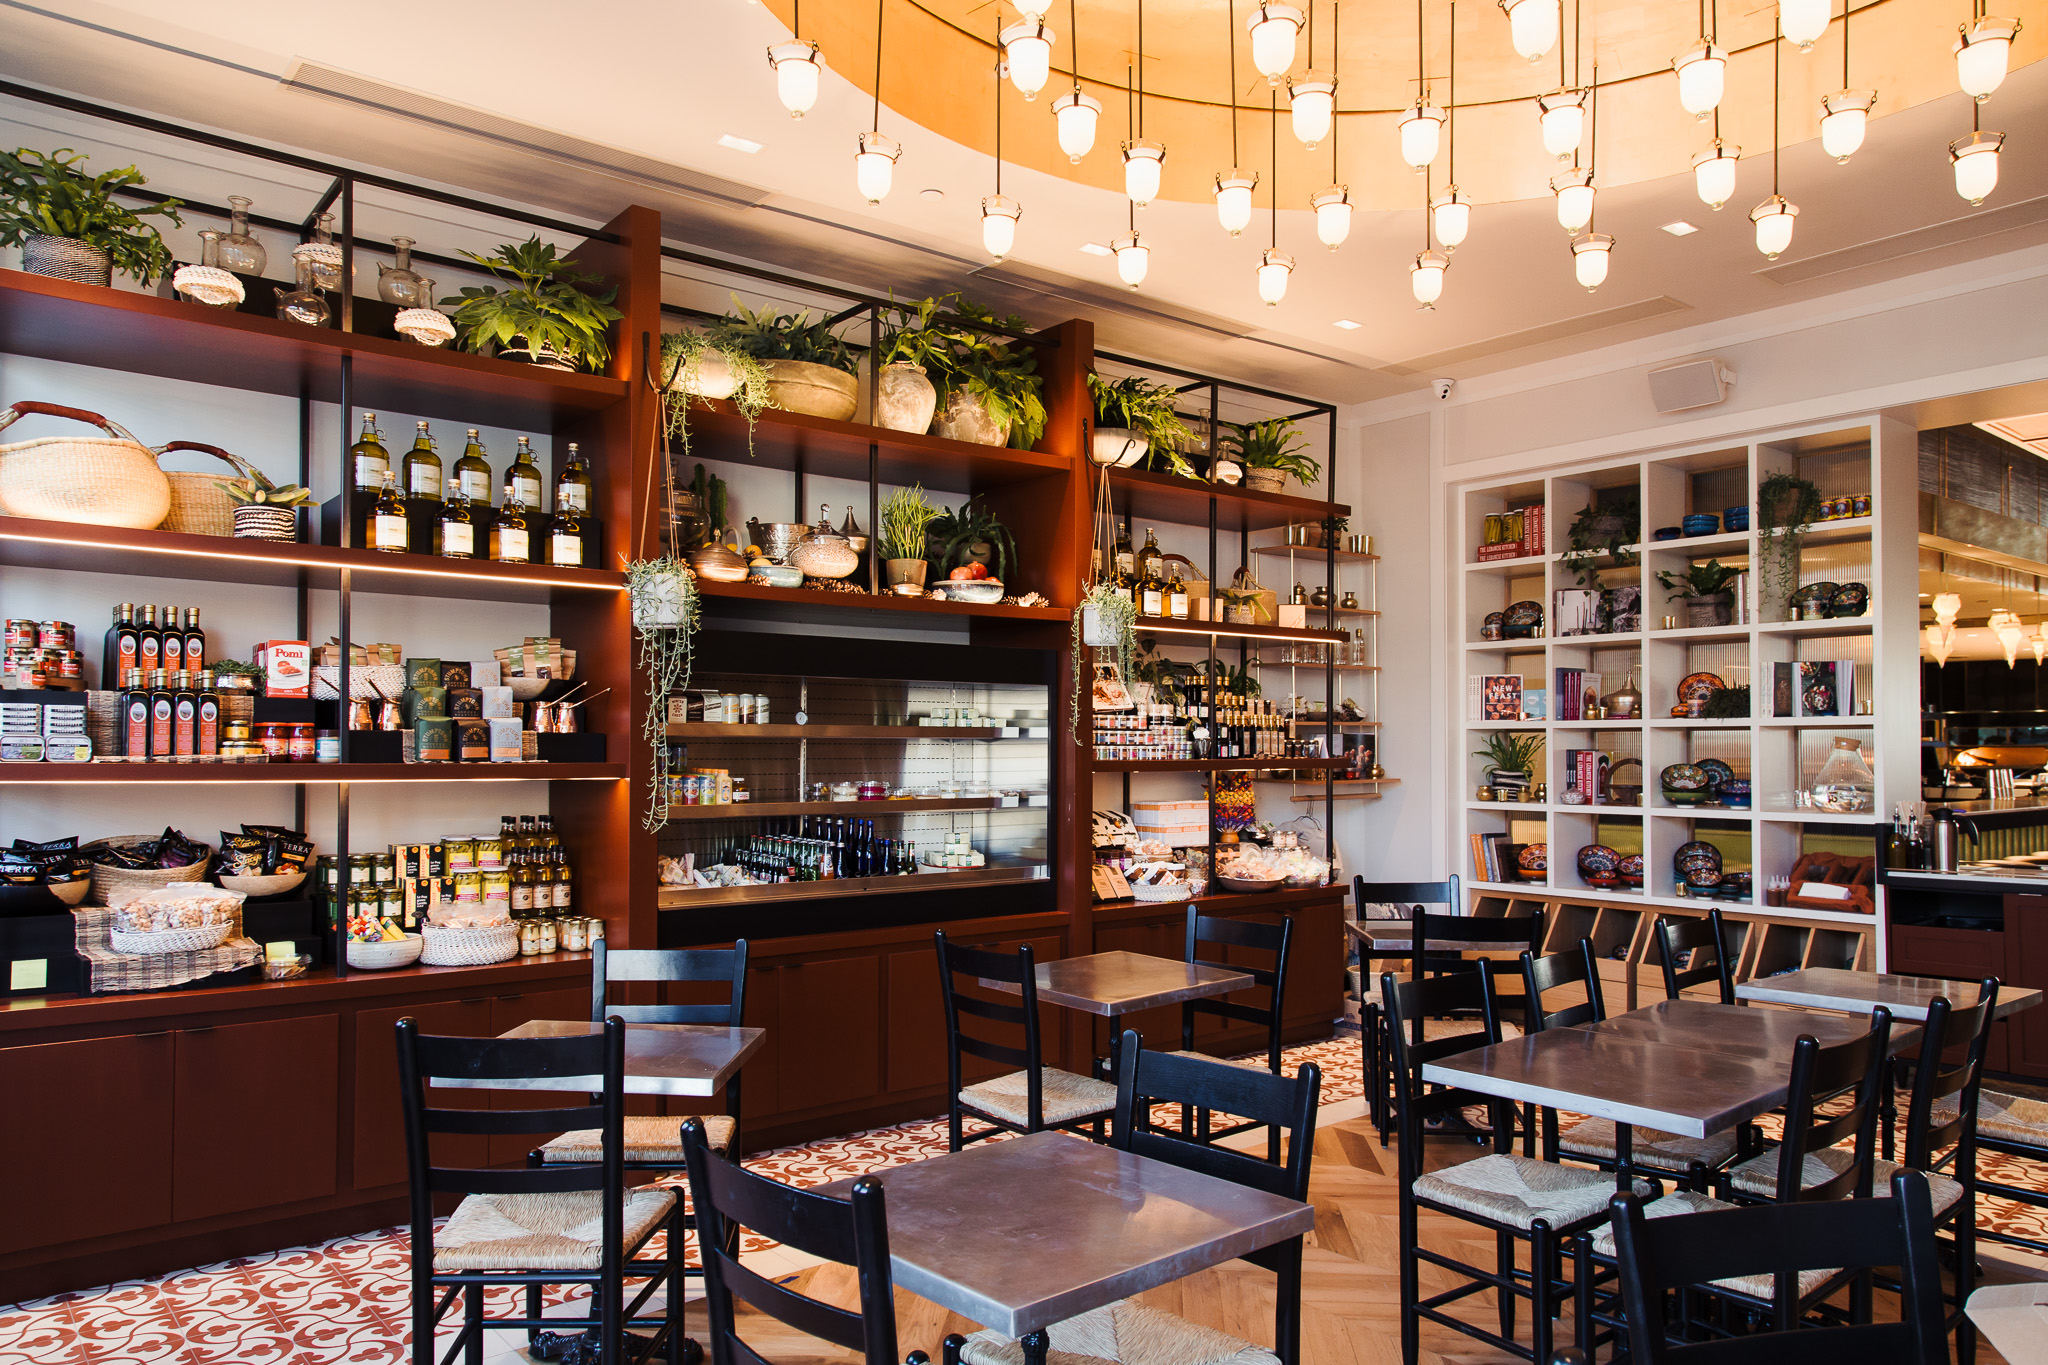 The Hottest Restaurants in 15 American Cities - Zagat